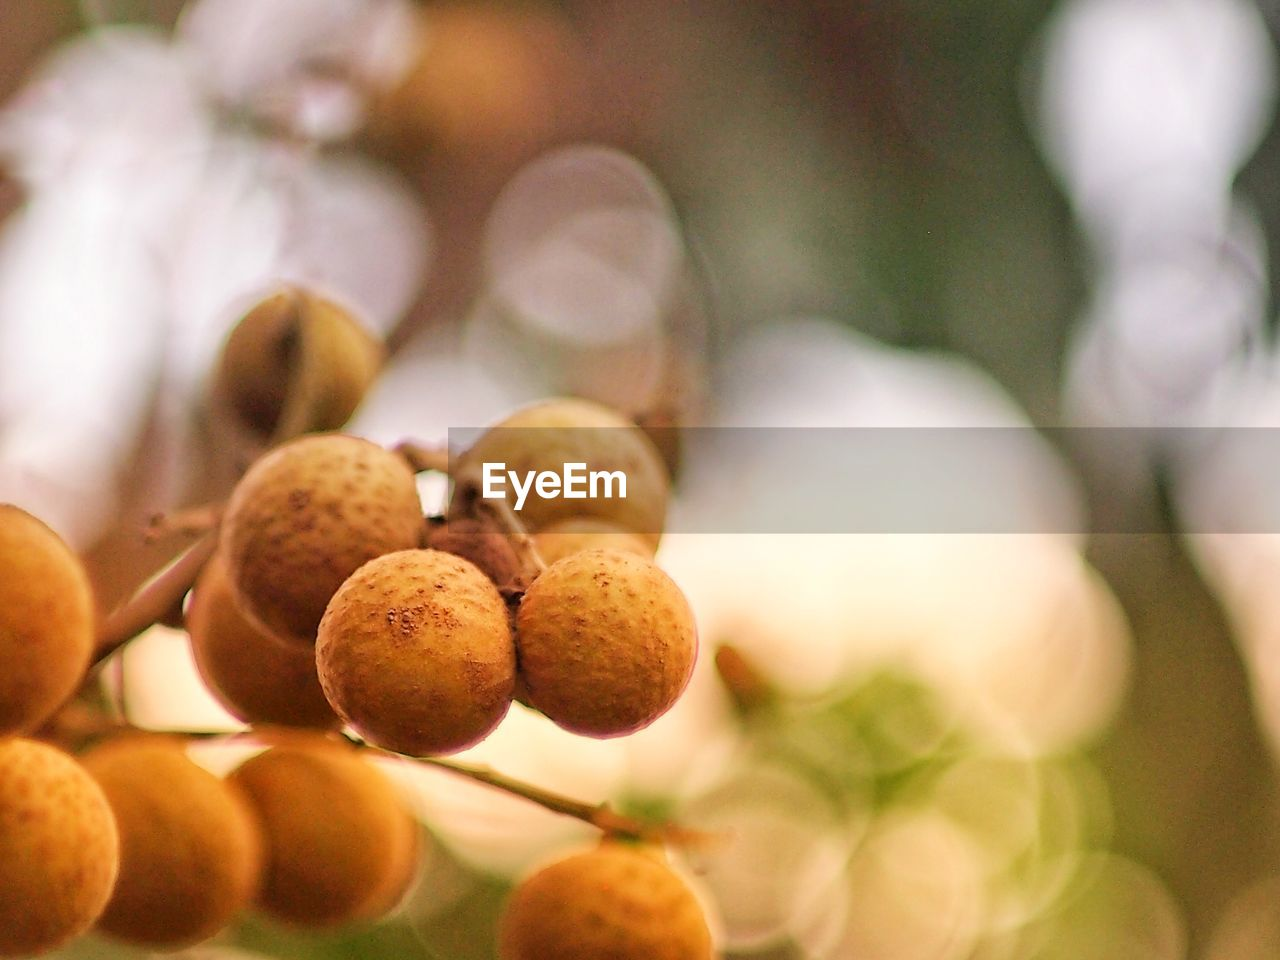 close-up, fruit, freshness, food and drink, healthy eating, food, focus on foreground, no people, selective focus, growth, wellbeing, plant, day, tree, outdoors, nature, ripe, orange color, group, agriculture, lychee